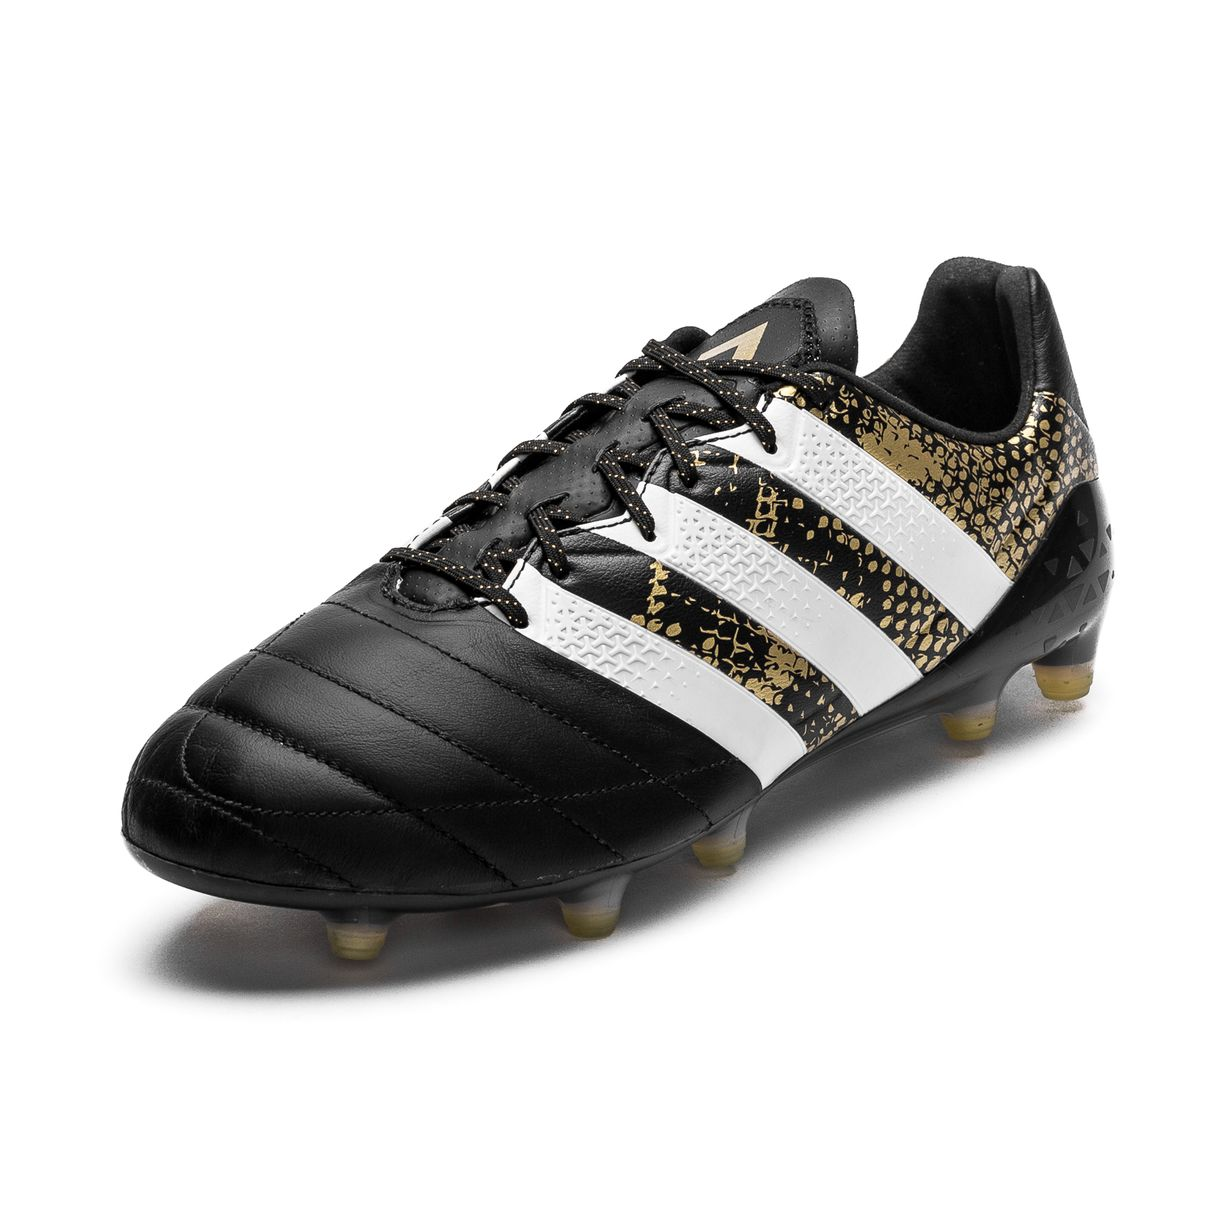 huge discount a1d96 3d9b9 official adidas ace 16.1 black and white c2727 21c90